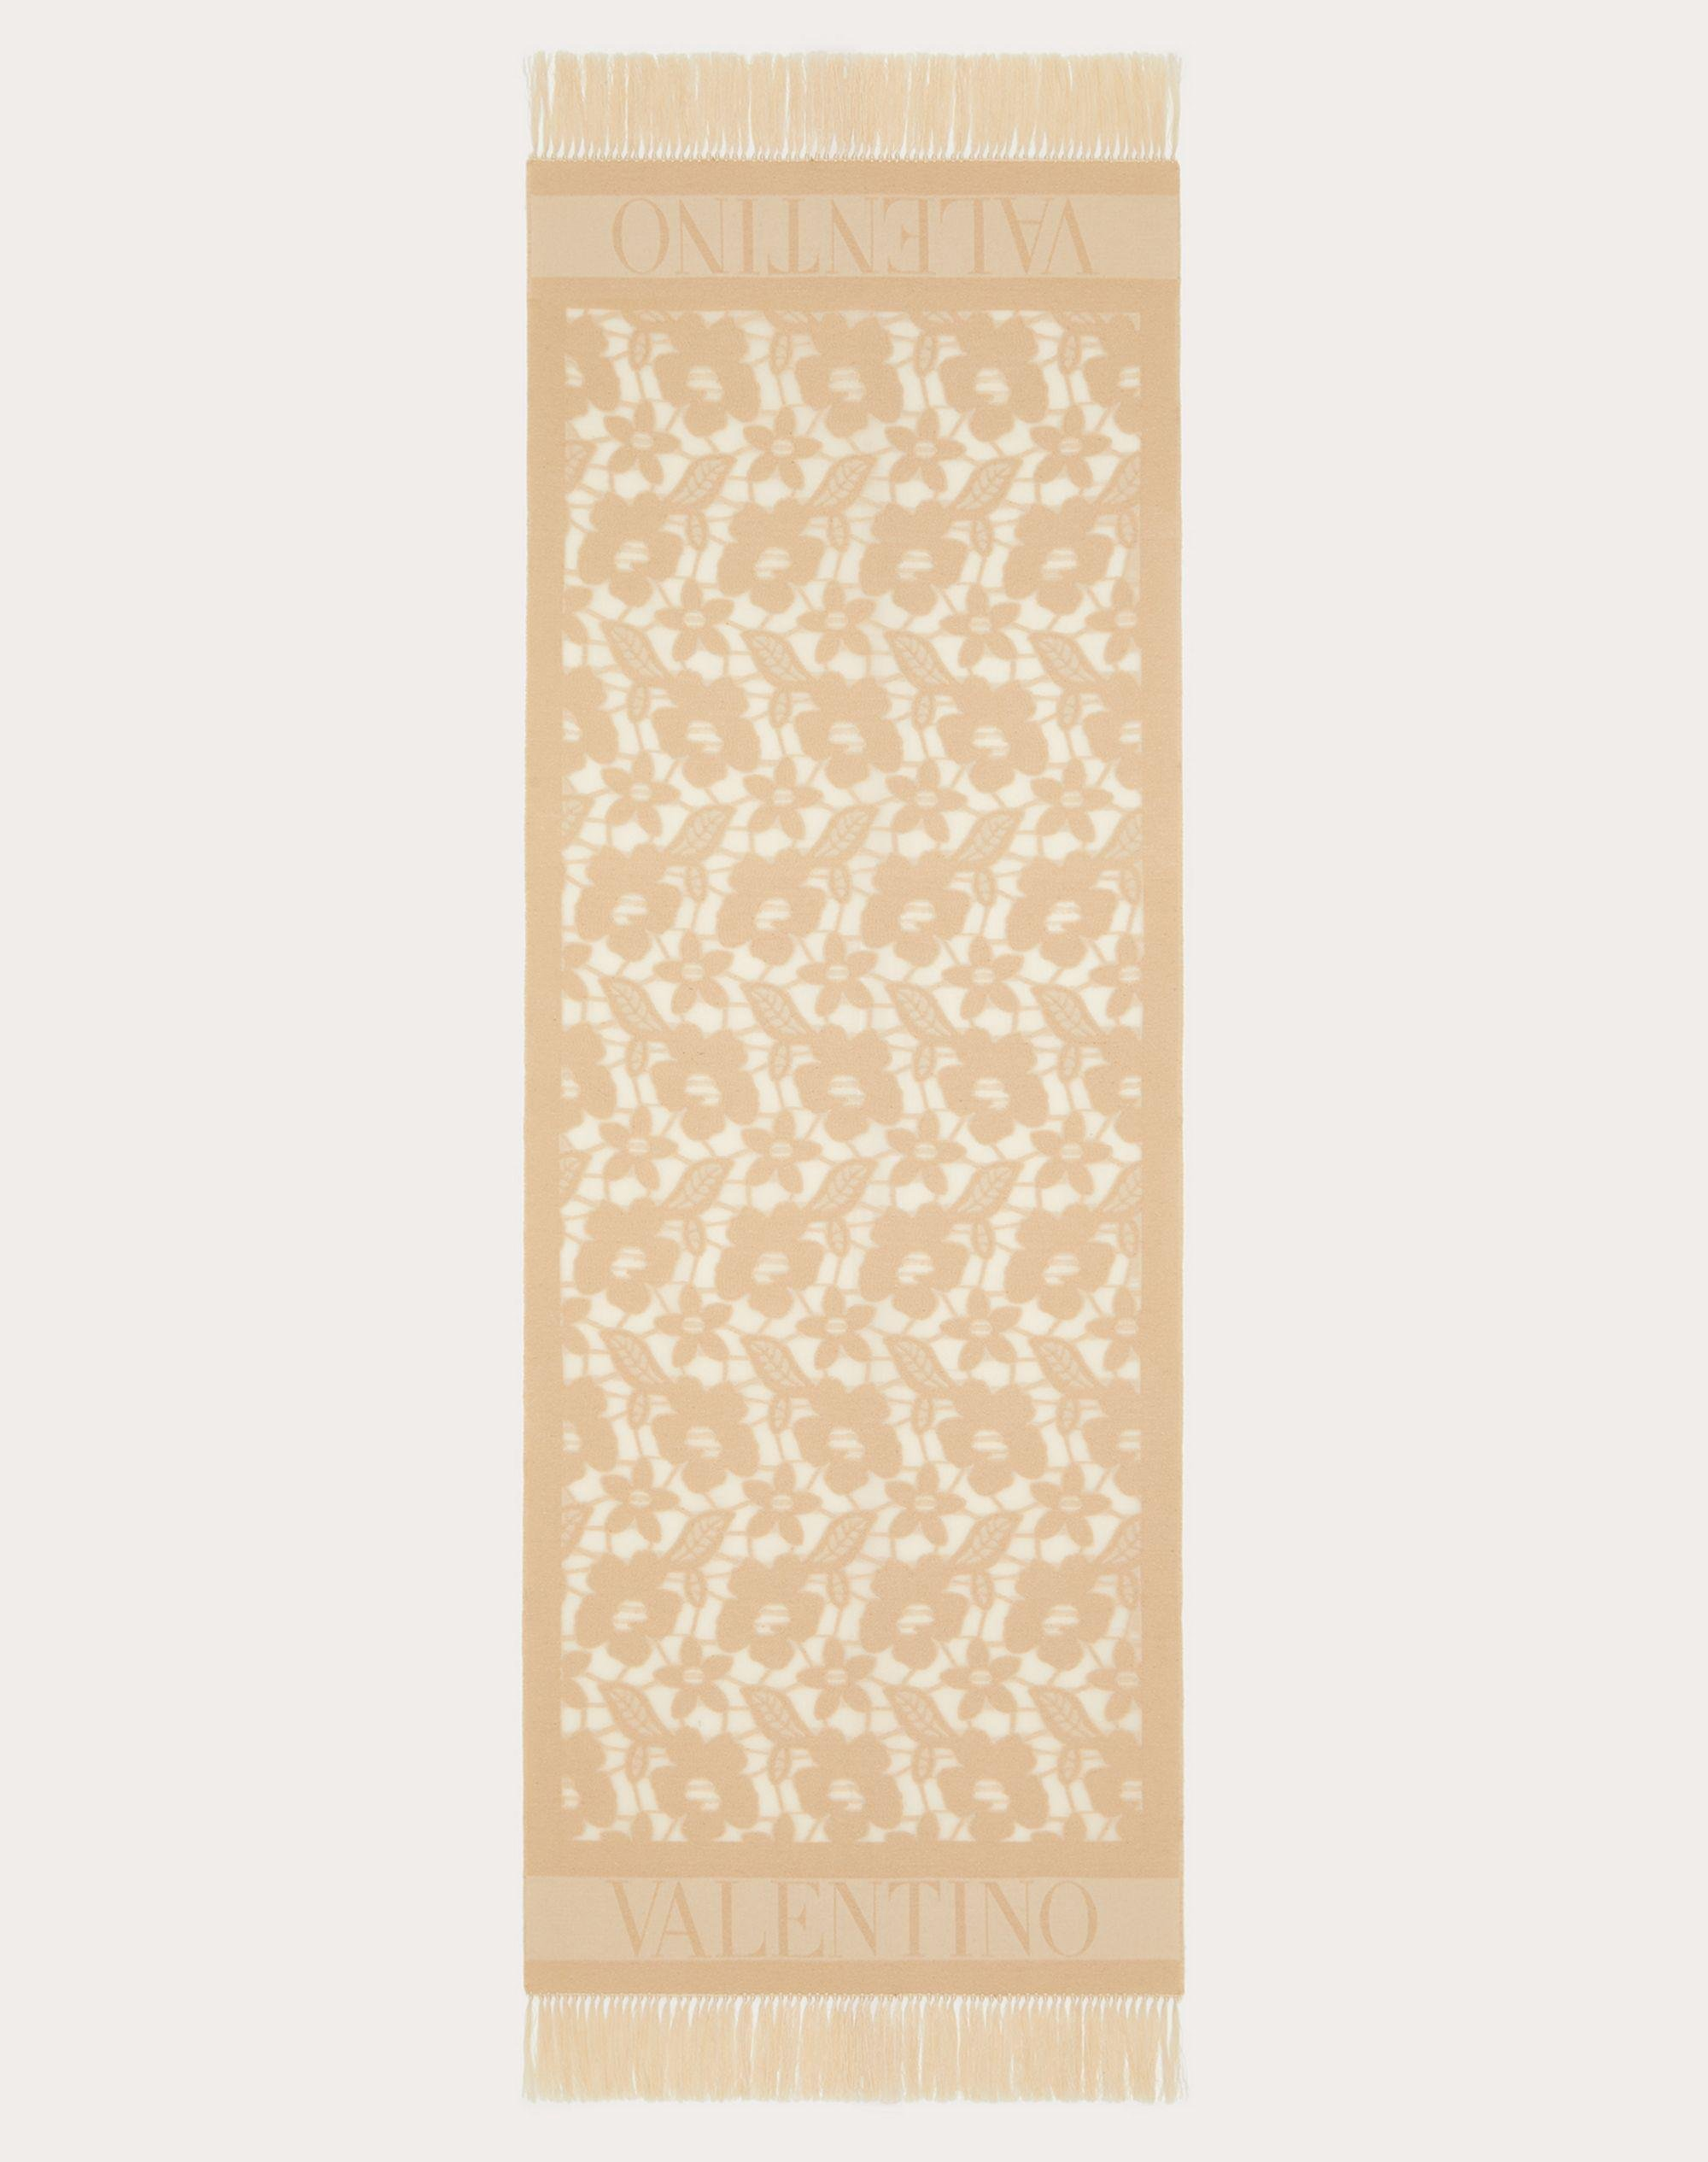 Cotton and silk stole with floral jacquard design 70x200 cm / 27.6x78.7 in.